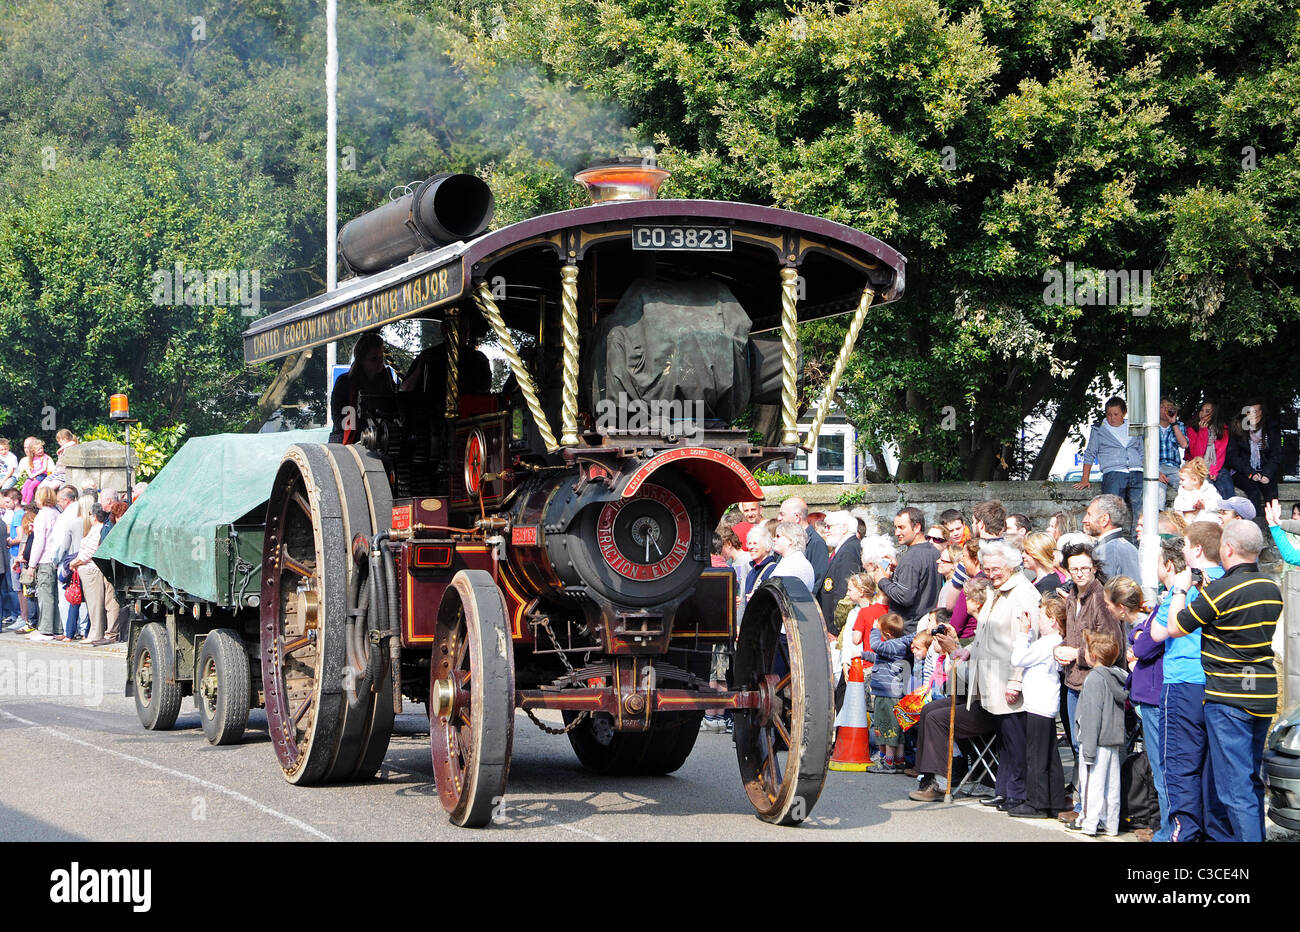 A steam engine in the annual Trevithick day parade, Camborne, Cornwall, UK - Stock Image